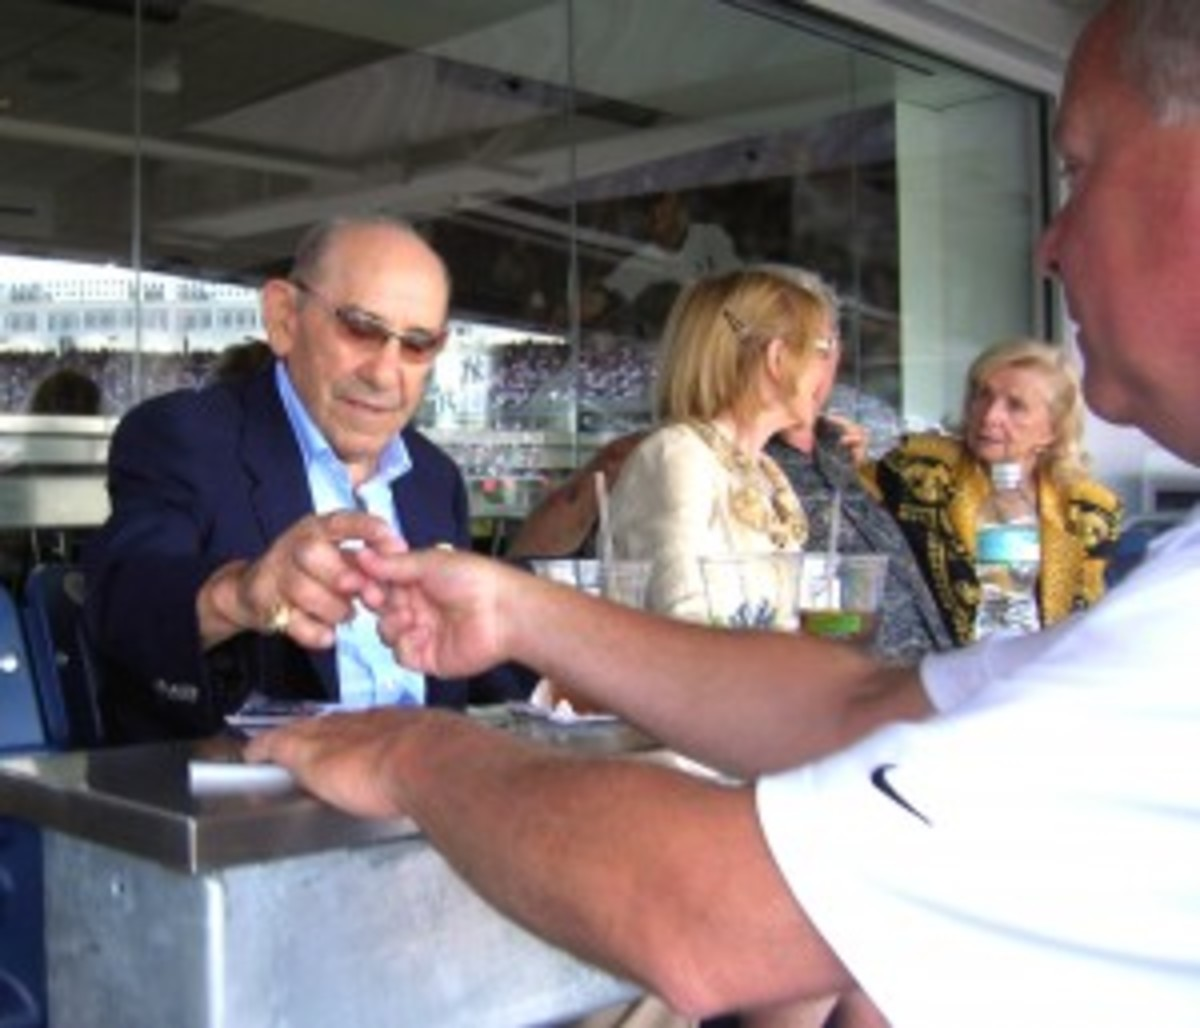 Autographs from the likes of Yogi Berra are commonplace during Old-Timers' Day.